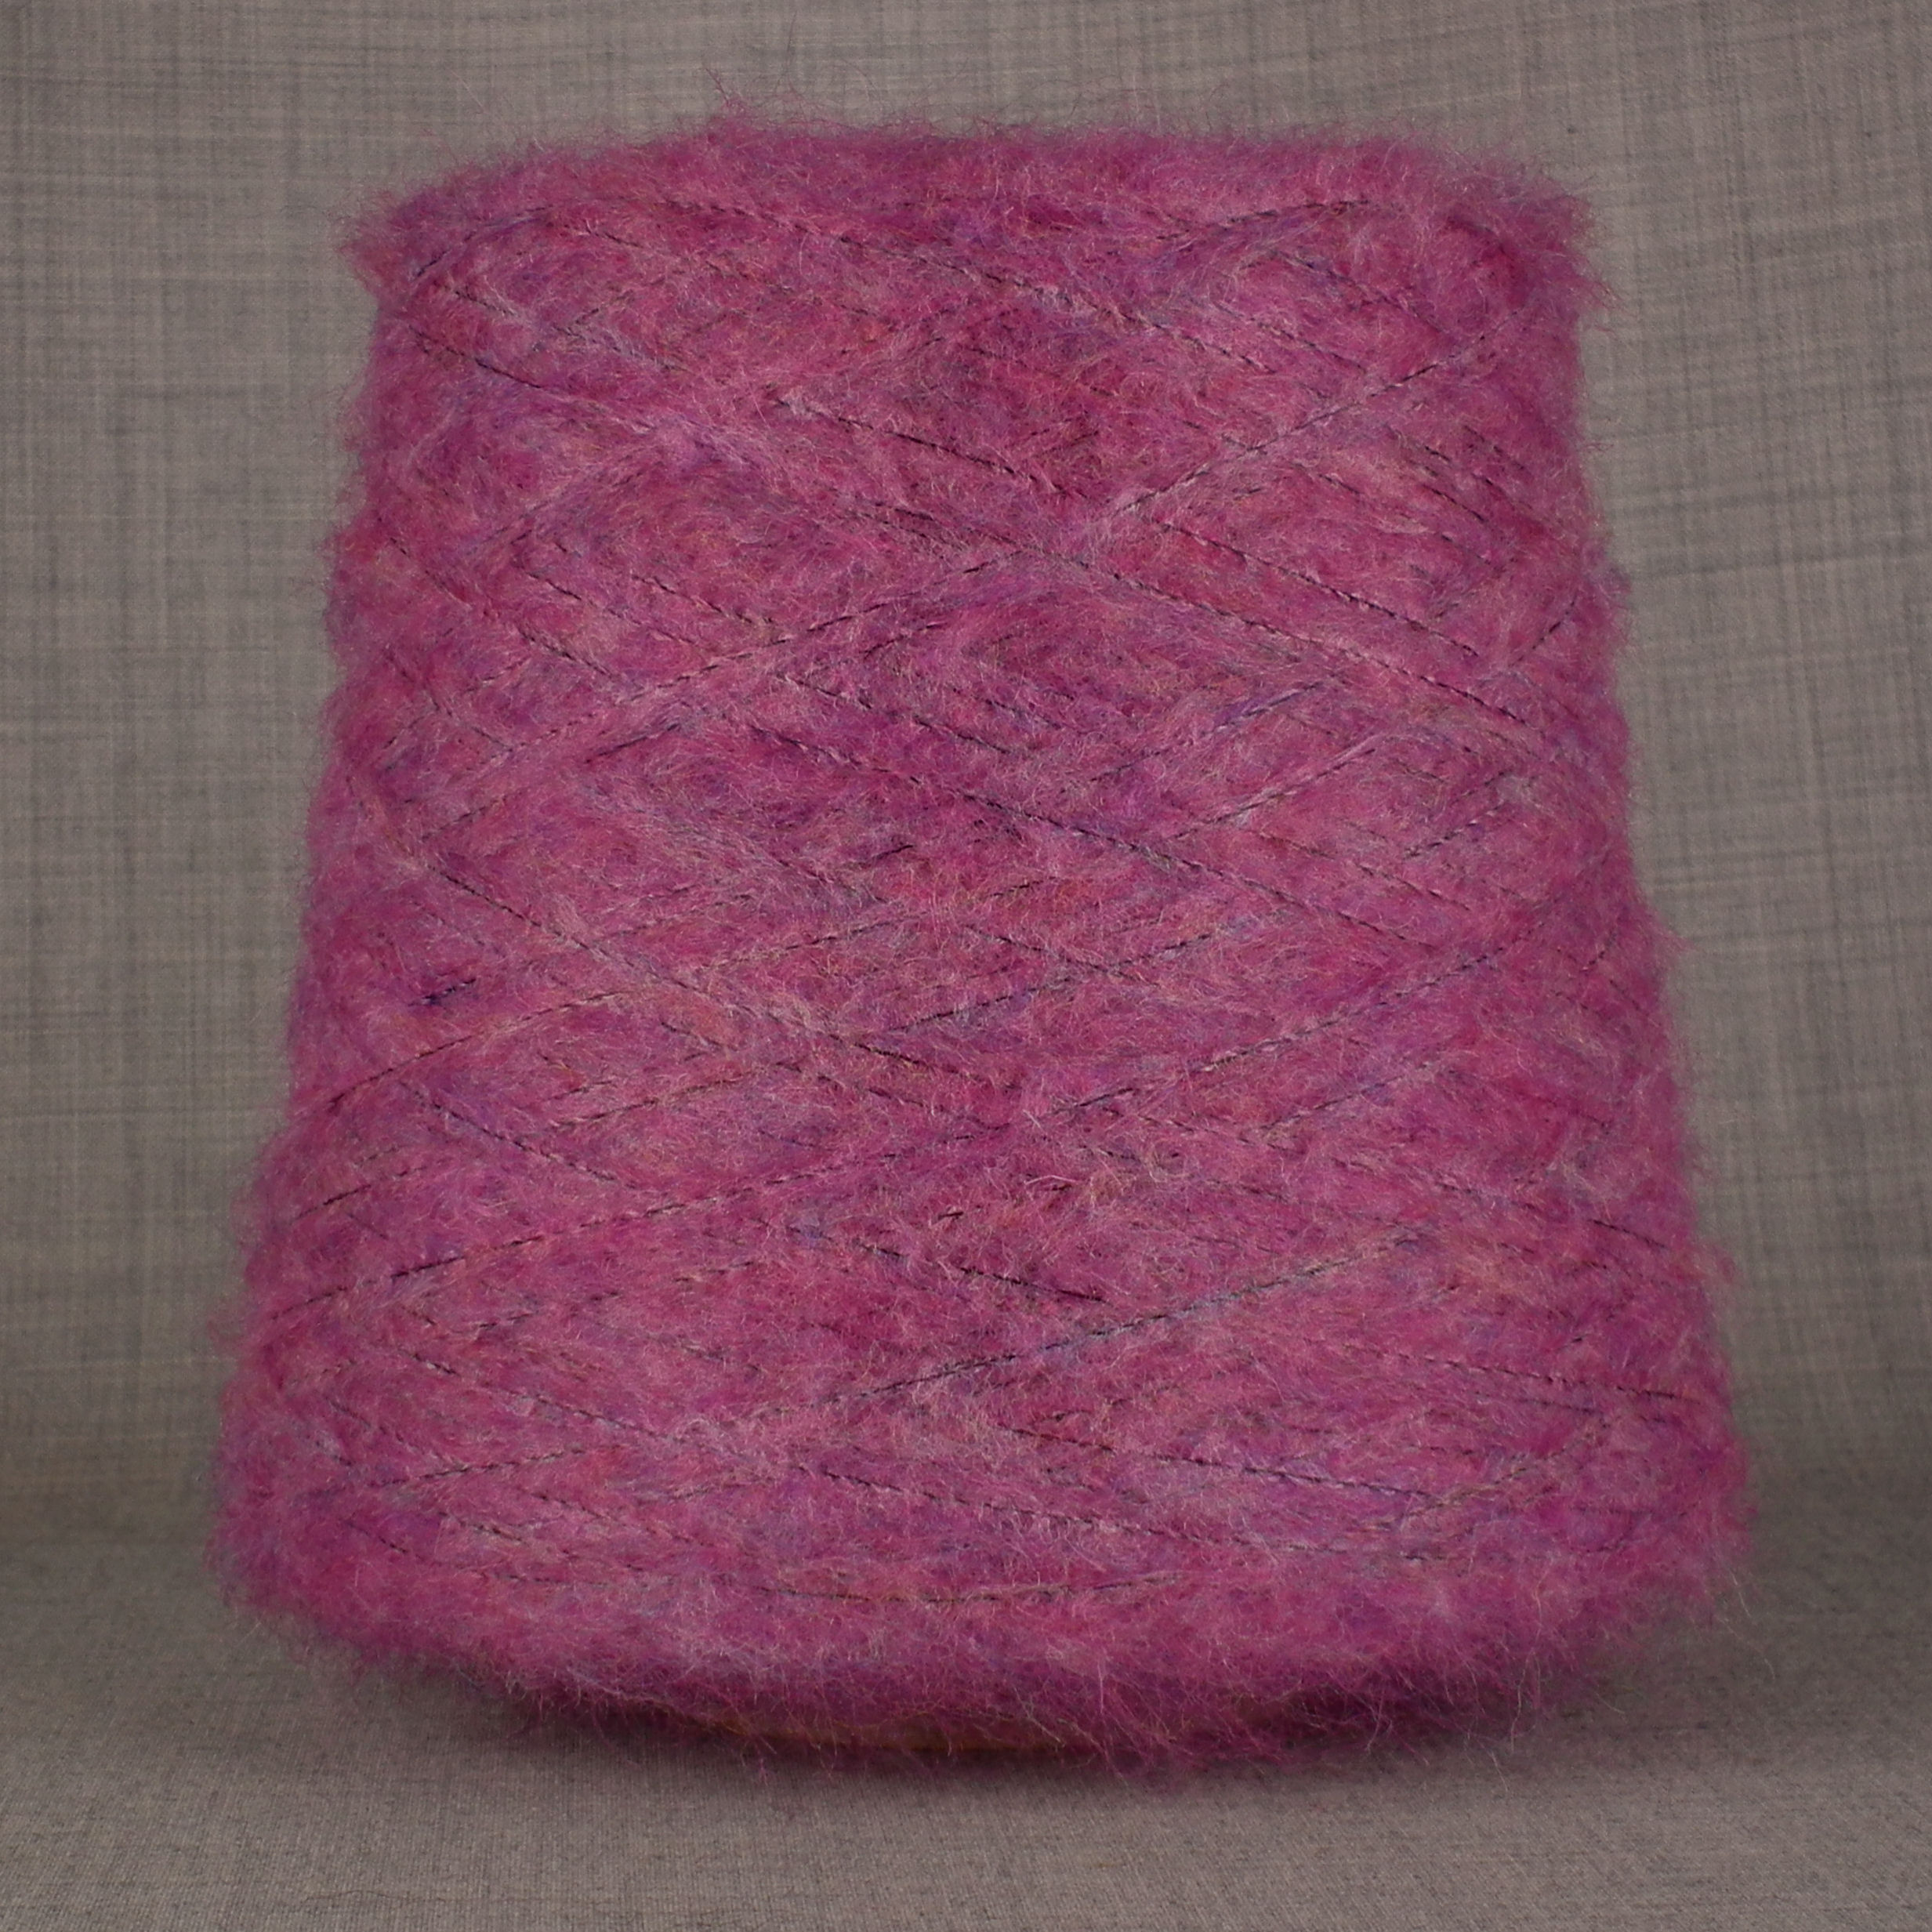 mohair wool viscose blend 4 ply yarn on cone soft fluffy warm knitting uk mulberry pink